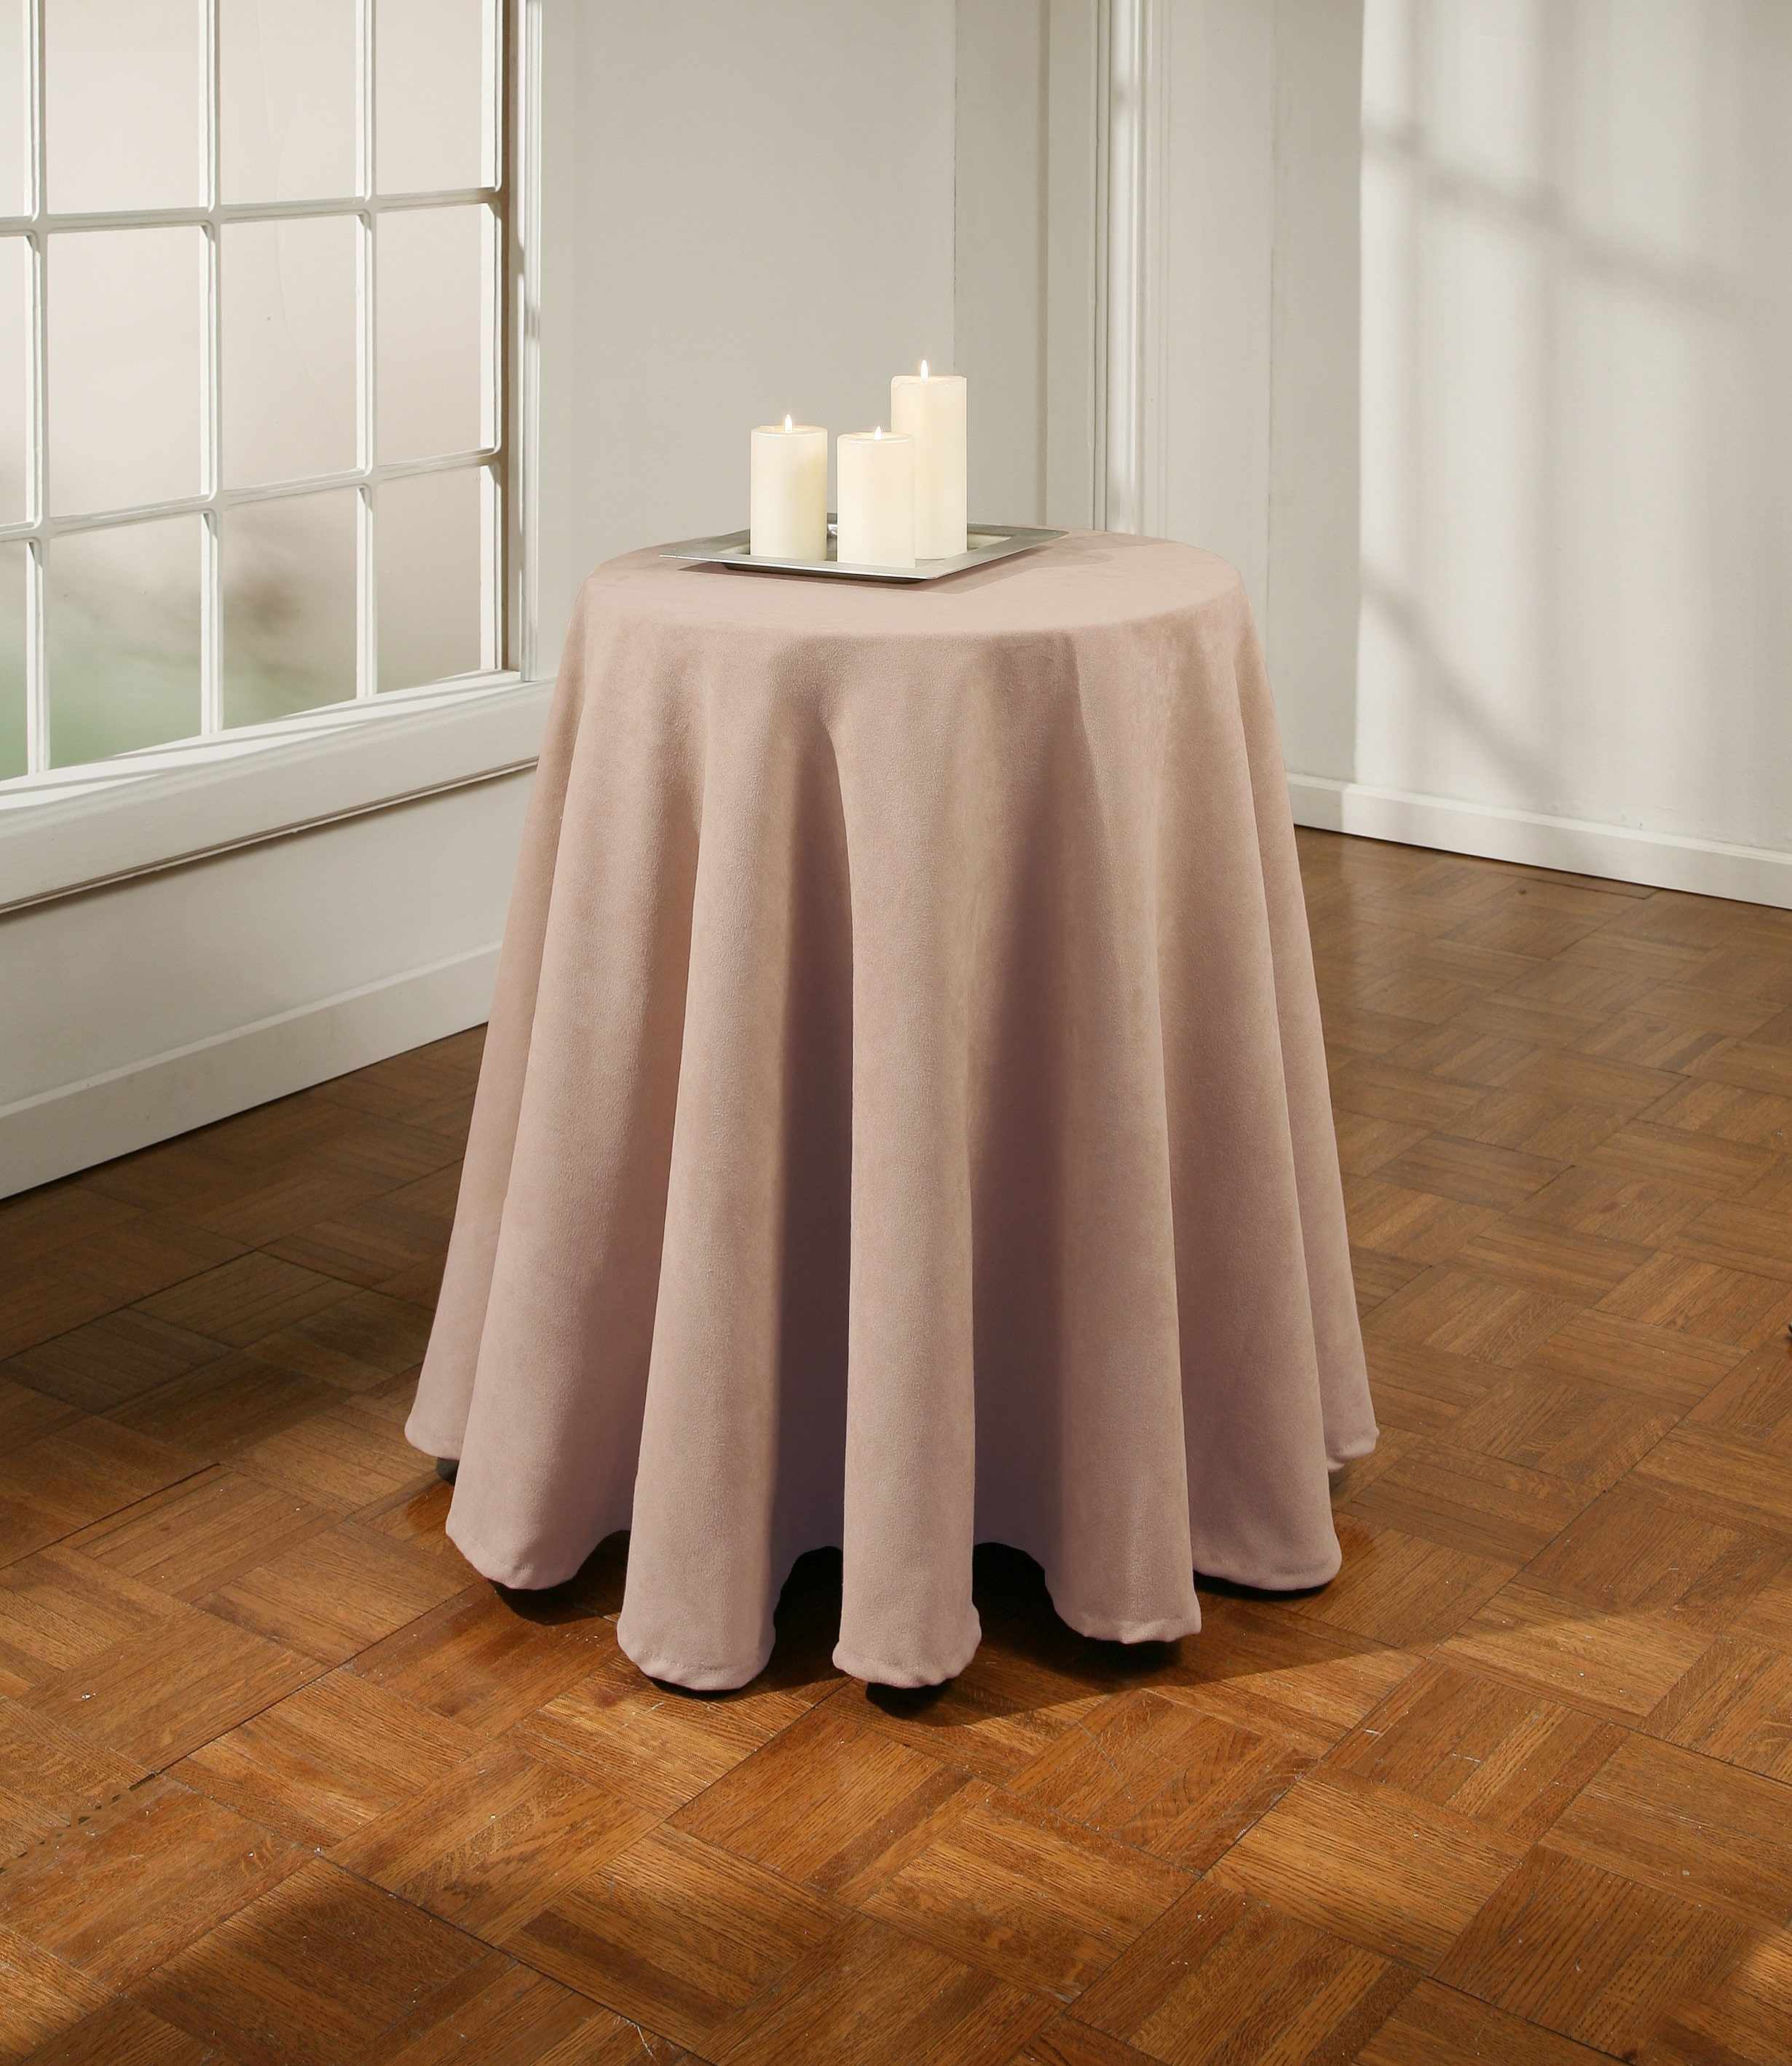 Suede 70 Inch Round Tablecloth 10776906 Overstock Com